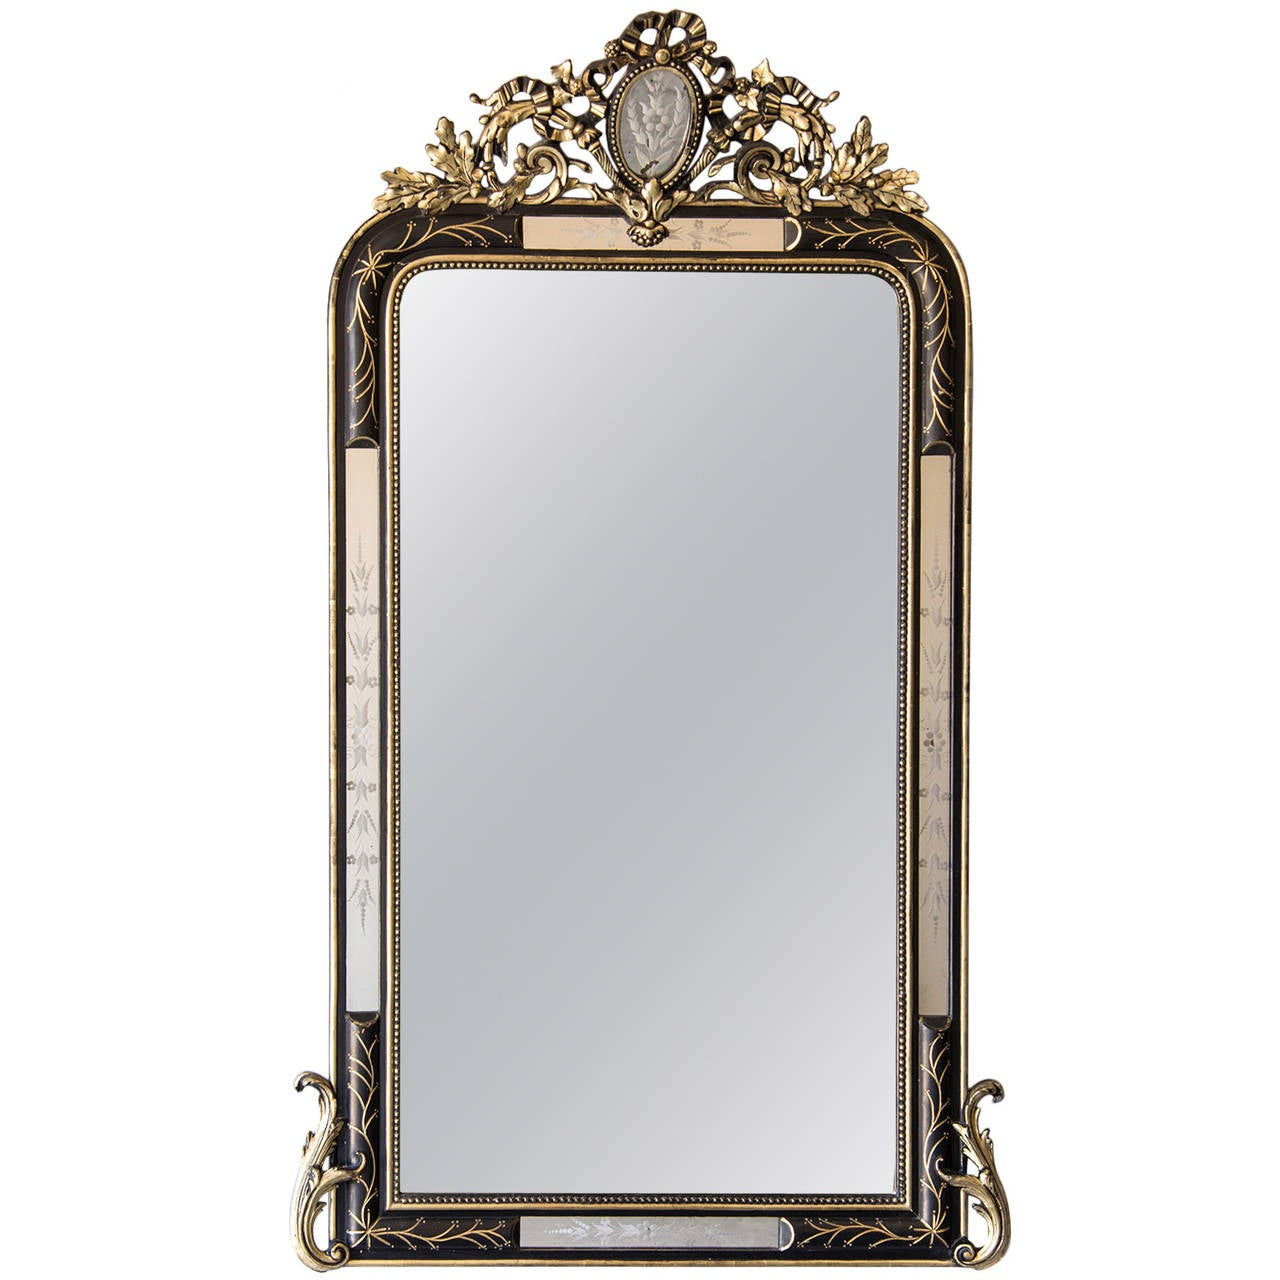 Antique French Napoleon III Ebonized and Gilded Mirror, circa 1875